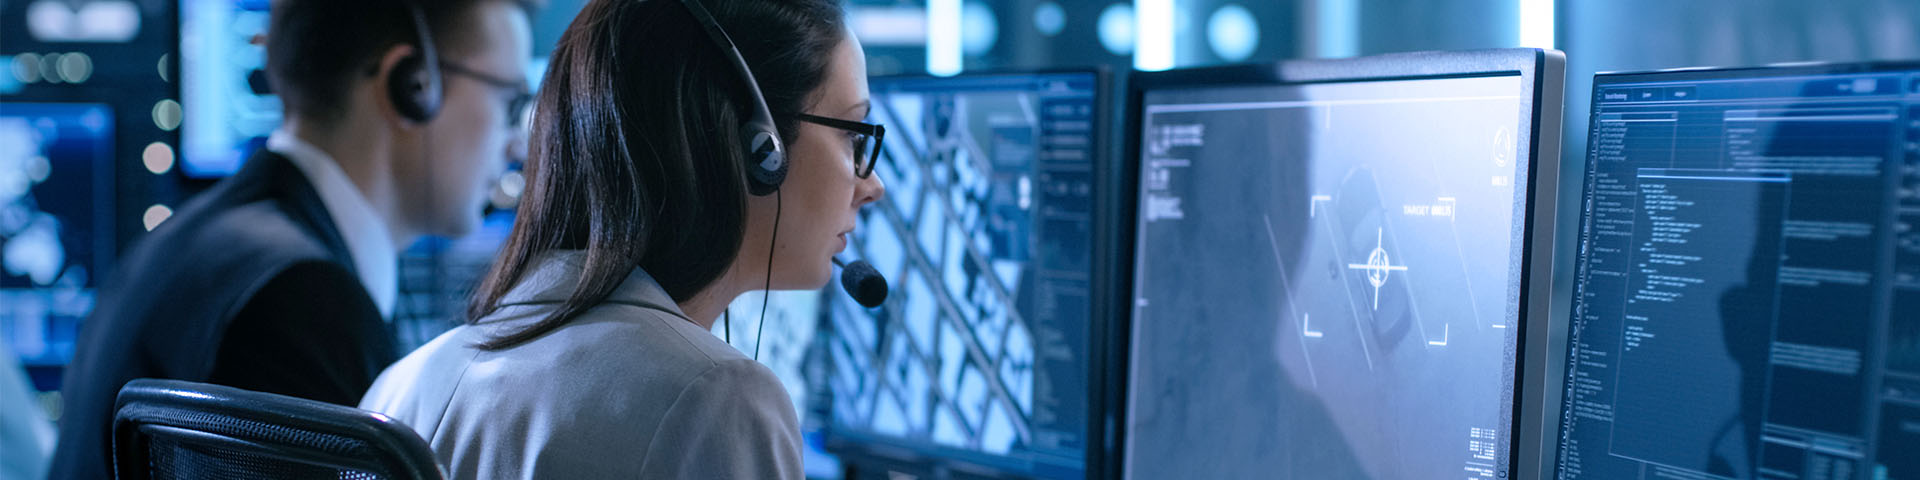 Two IT security experts secure cloud environment